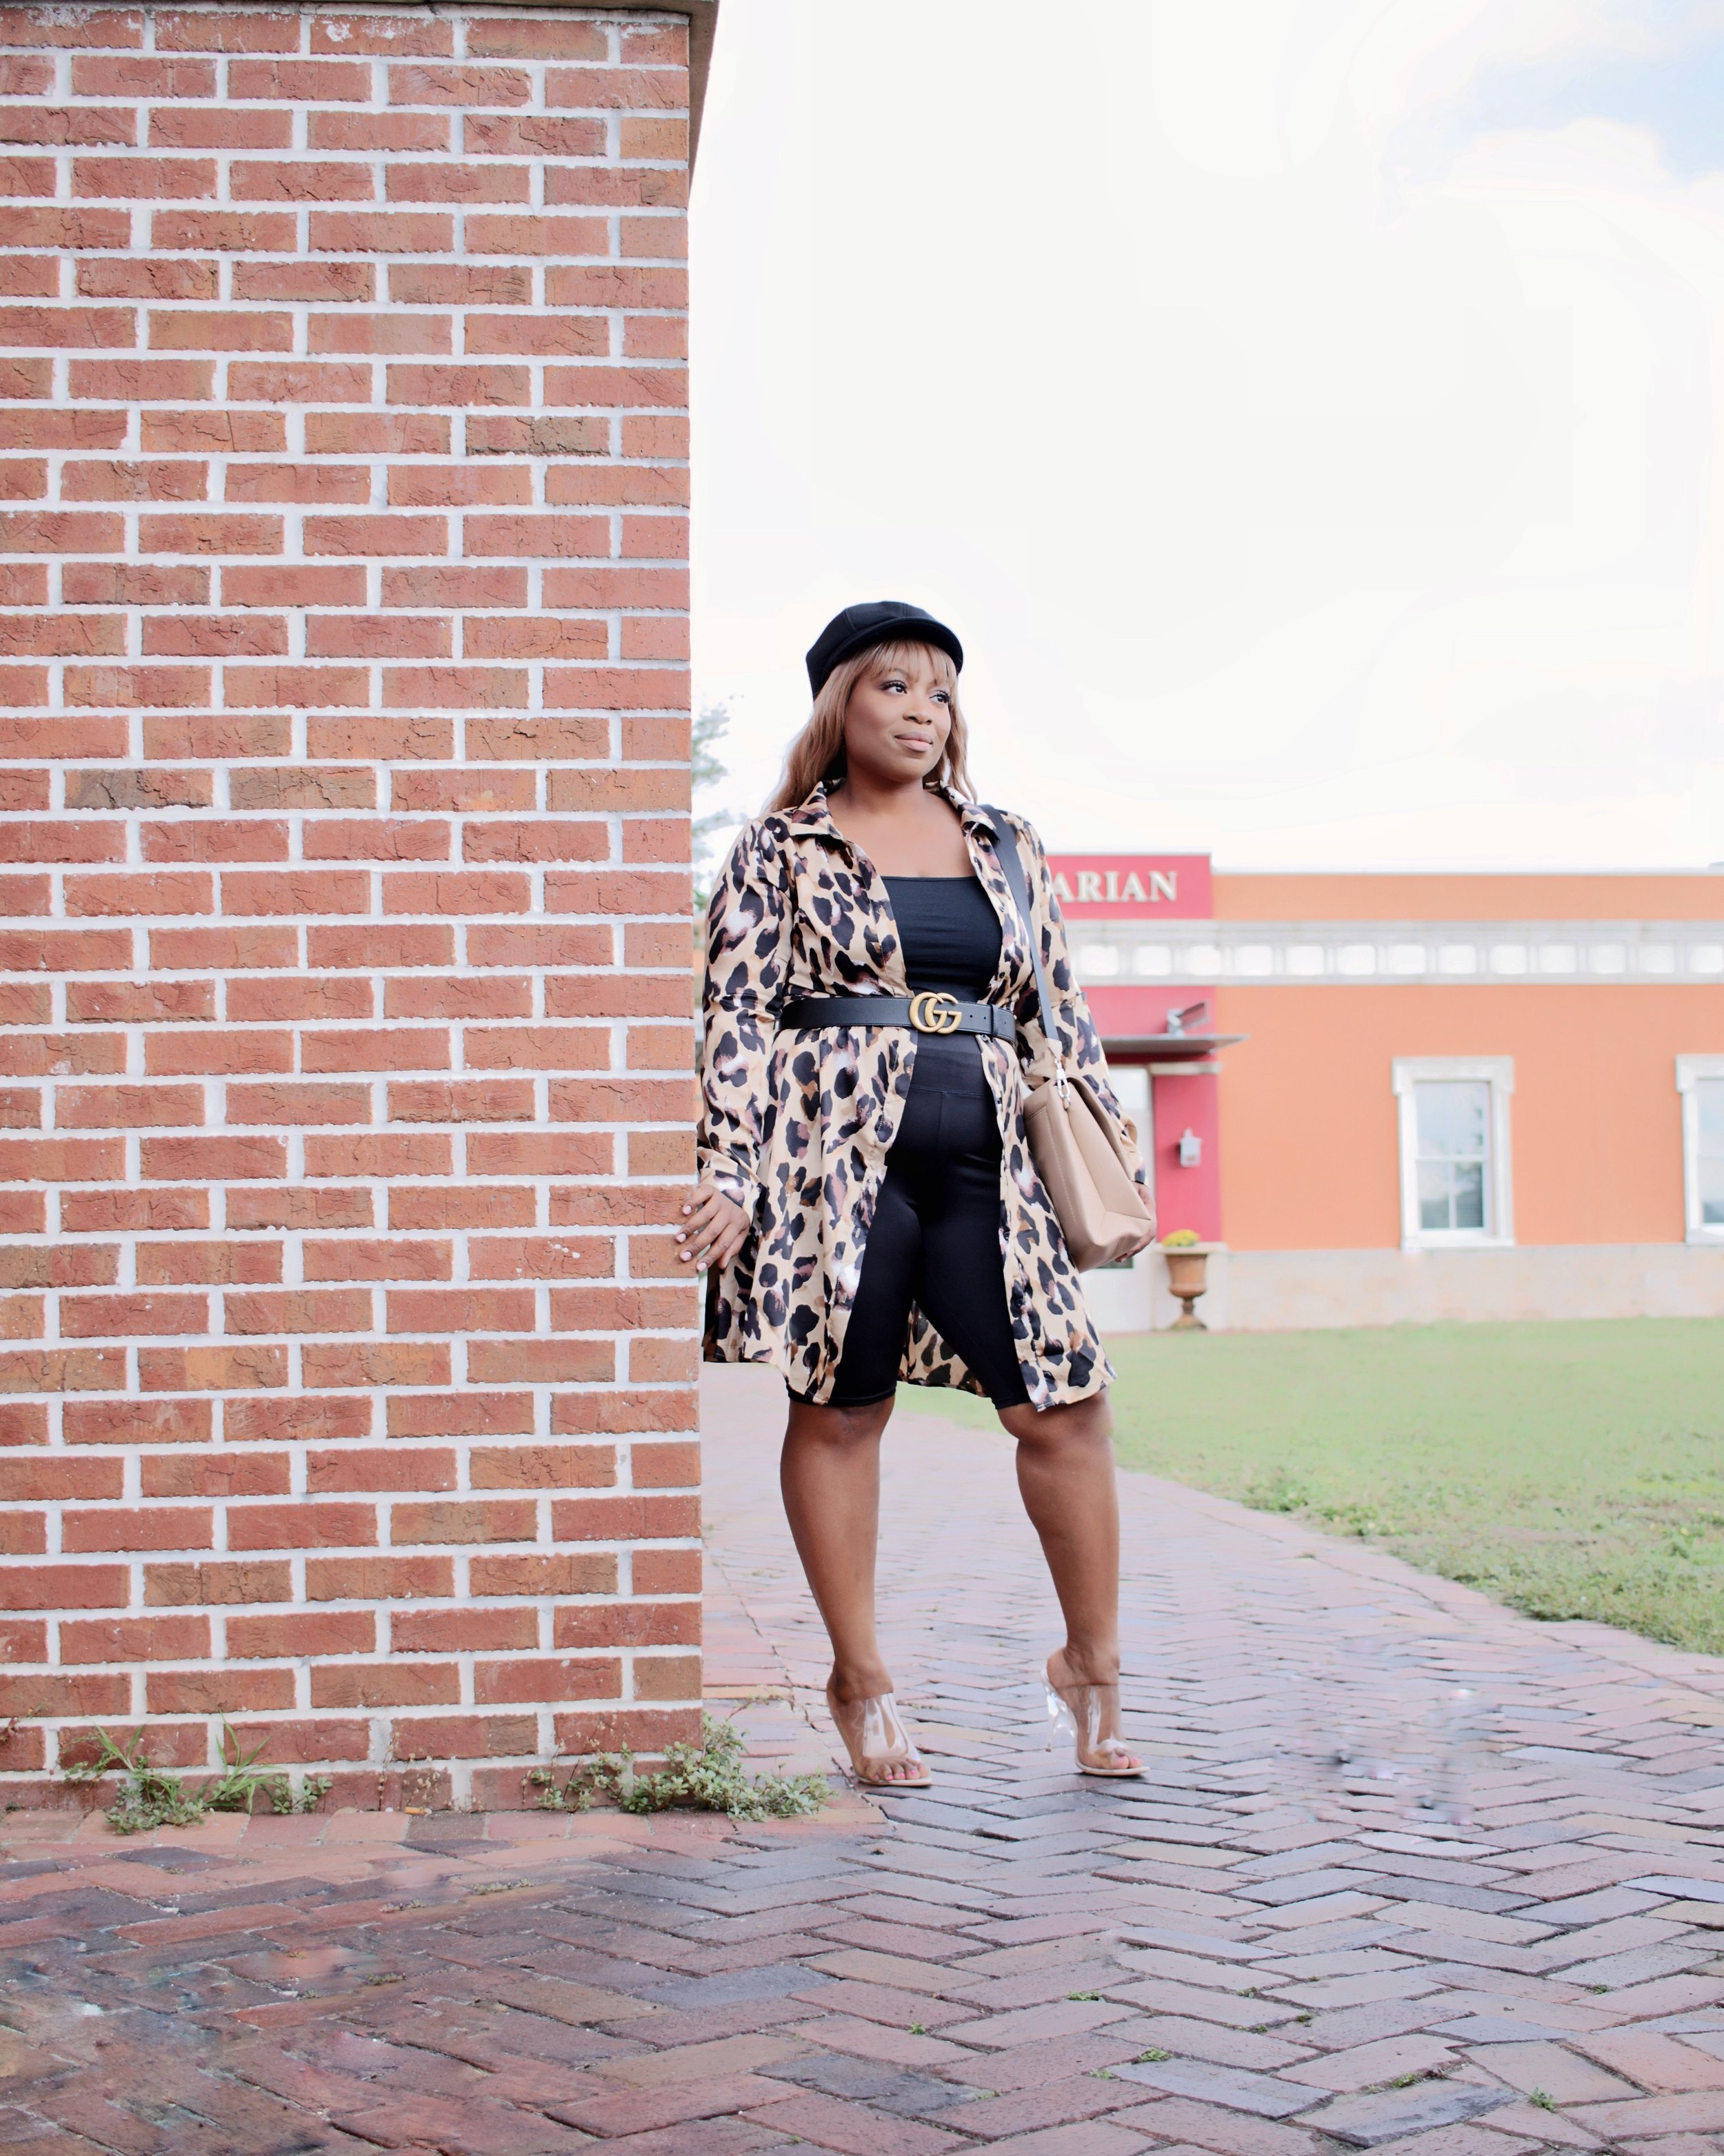 LEOPARD PRINT SHIRT DRESS/KIMONO (SIMILAR)   KIMONO STYLE TOPS ARE GREAT FOR MAKING YOU LOOK SLEEK AND SLIM, ESPECIALLY WHEN WORN ON TOP OF A DARK BODY SUIT OR TOP AND LEGGINGS.